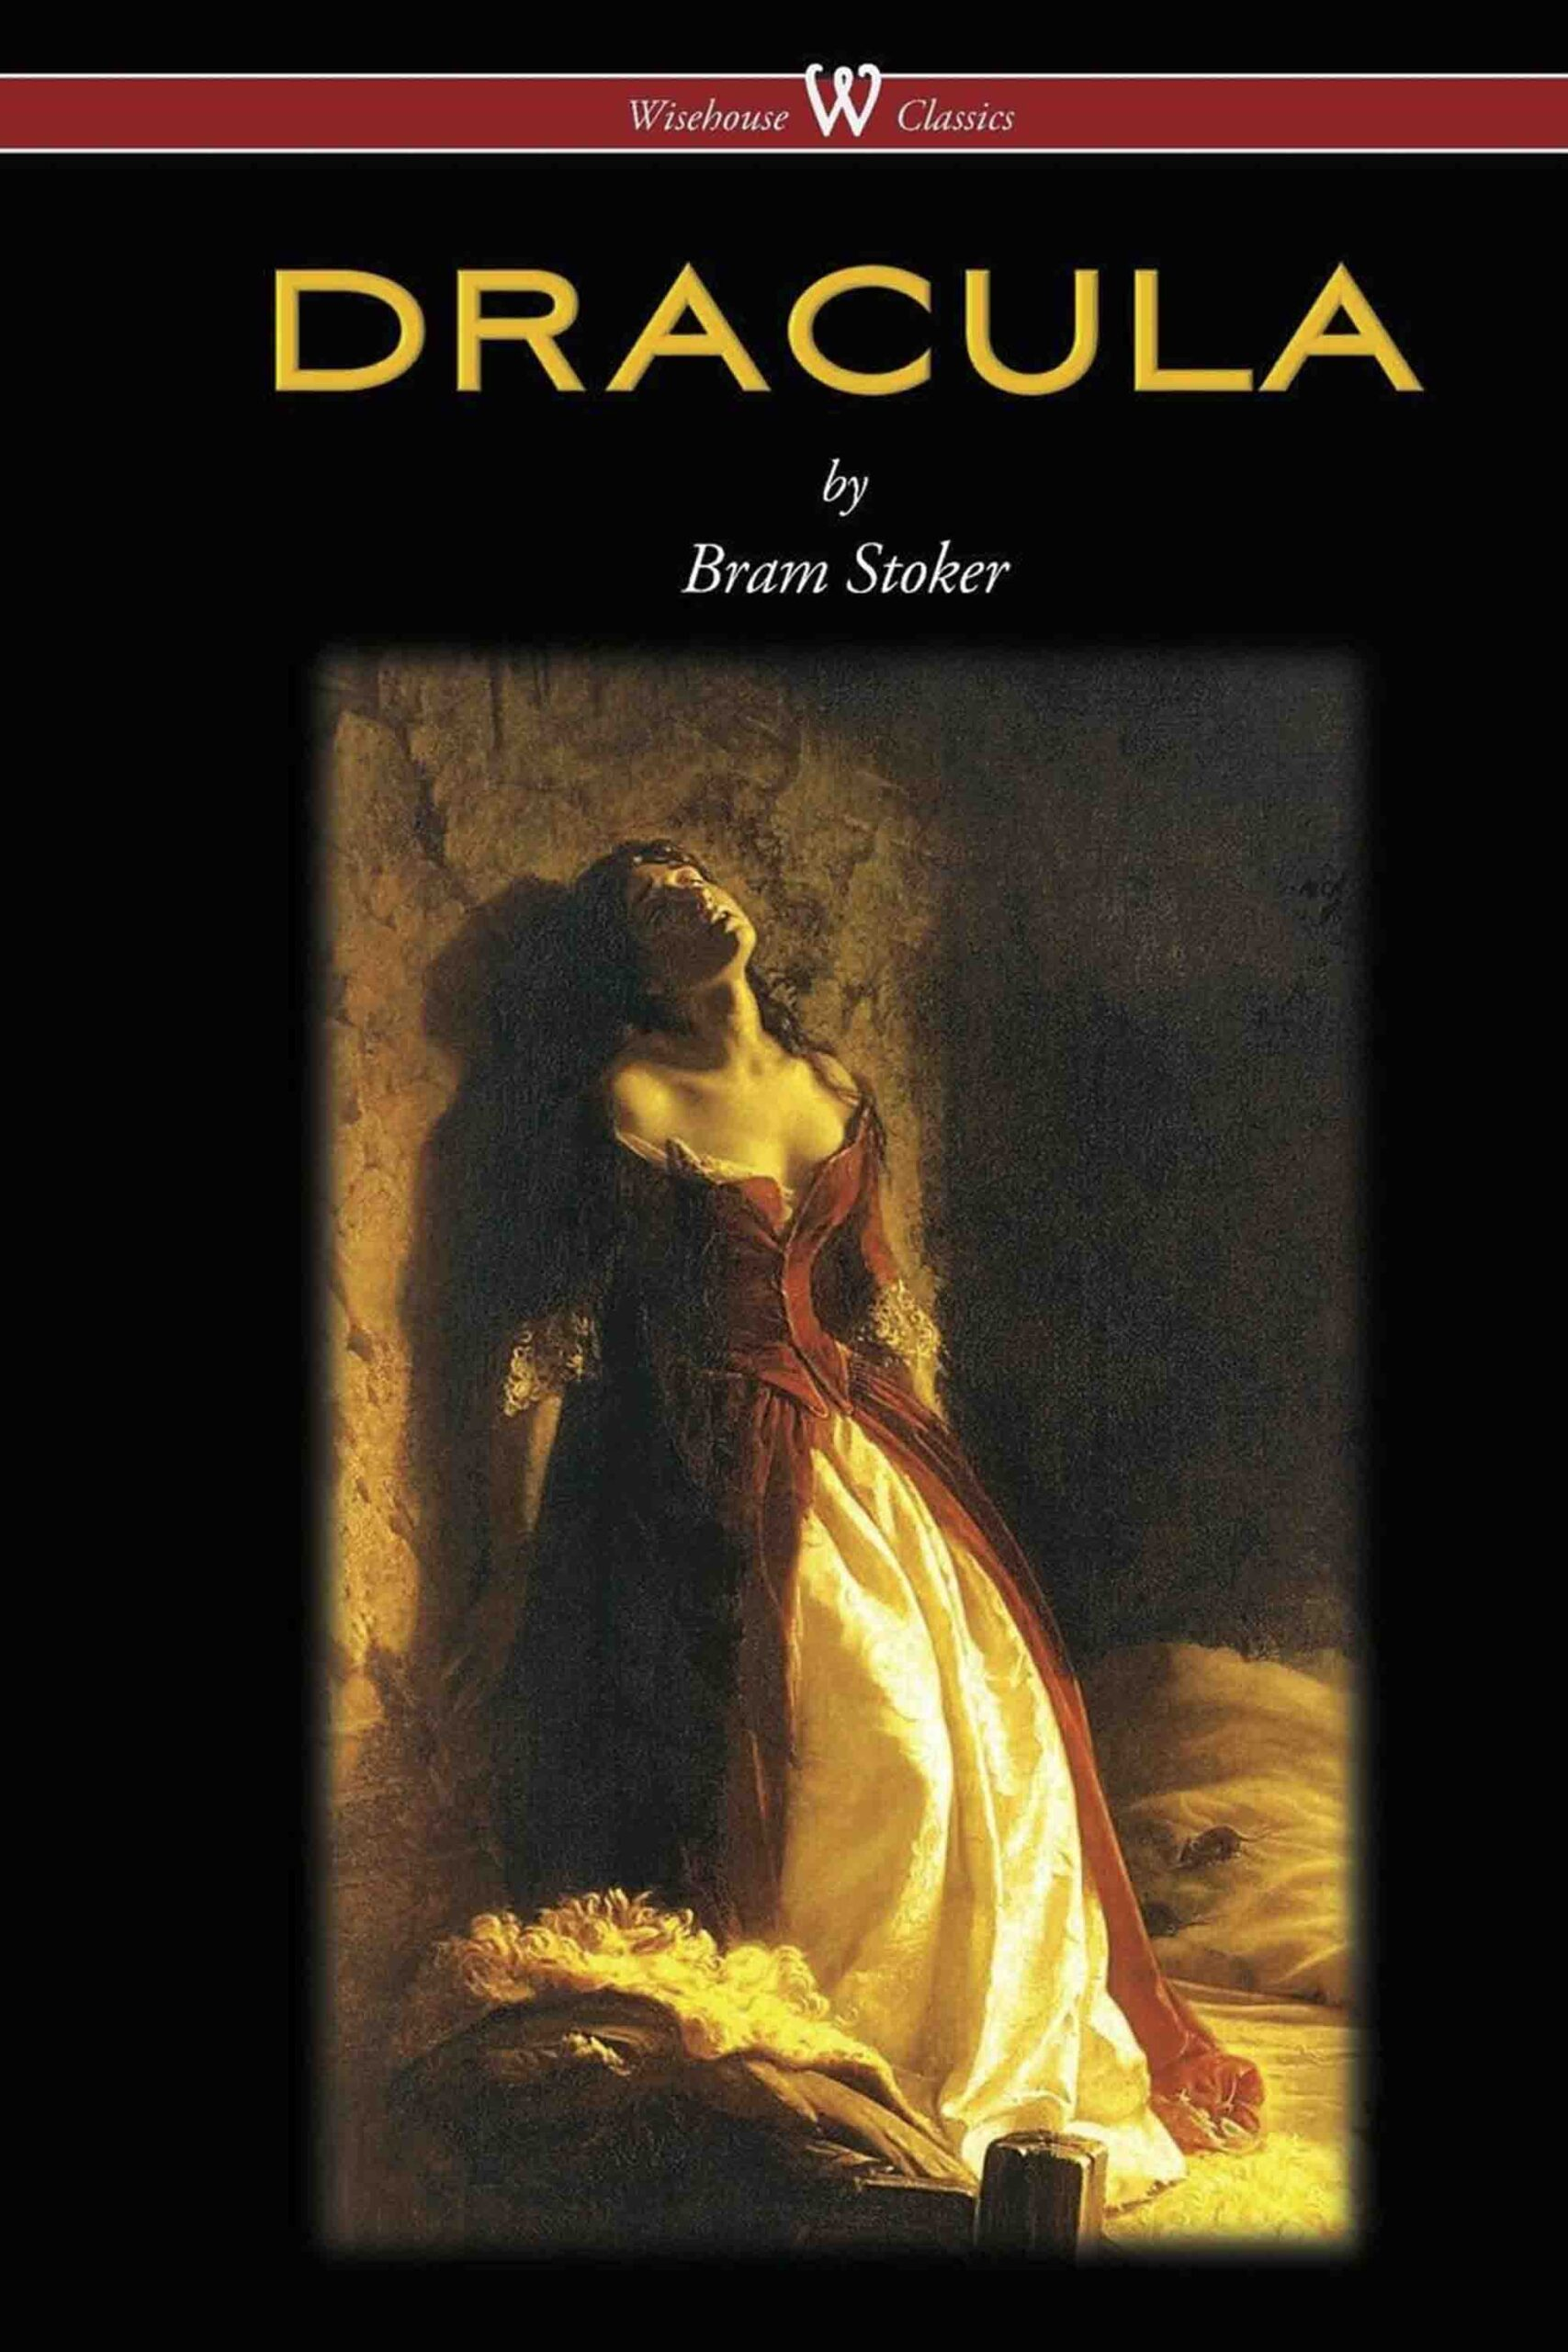 Dracula (Wisehouse Classics – The Original 1897 Edition)